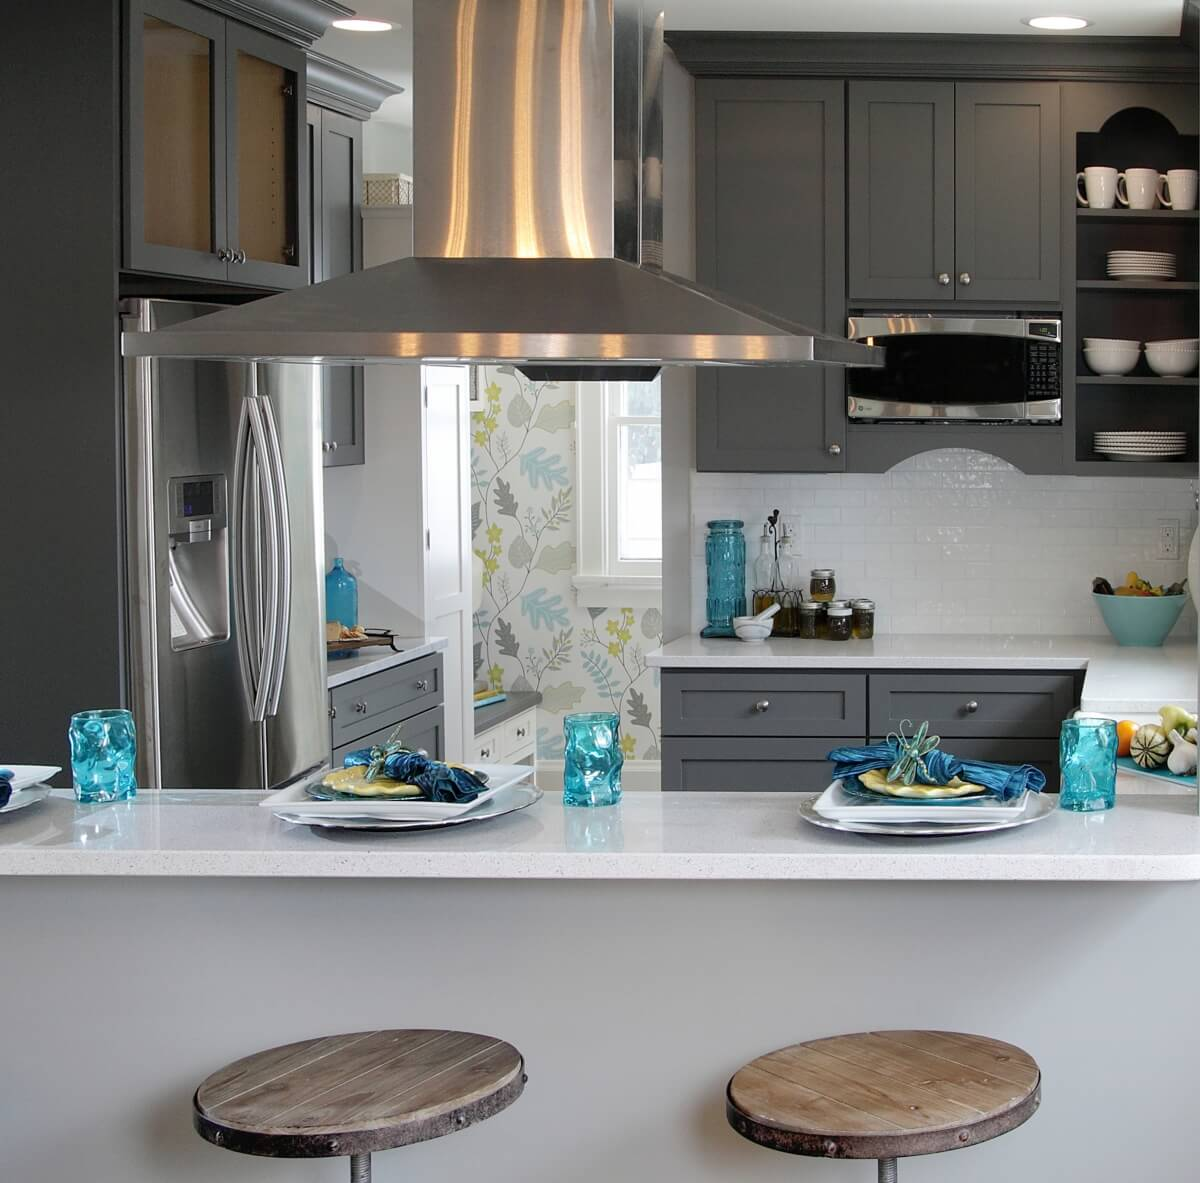 A dark gray painted kitchen with bold blue accents and brightly colored wallpaper.